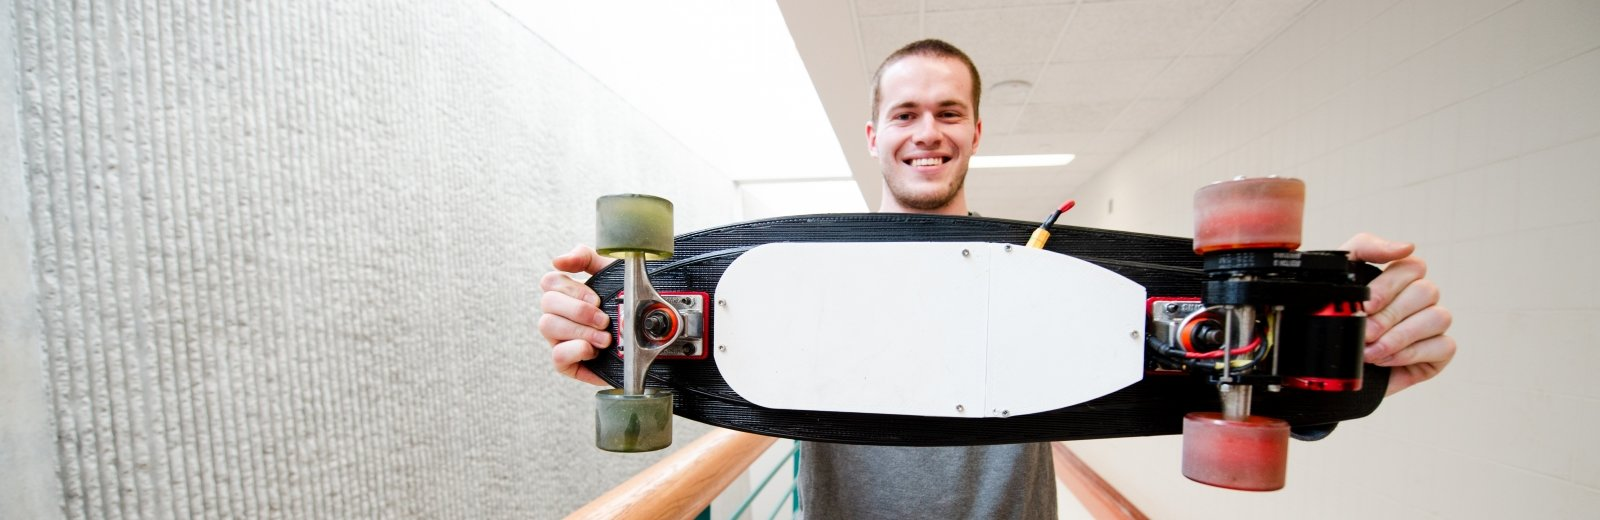 man holding a skateboard, wheels toward the camera